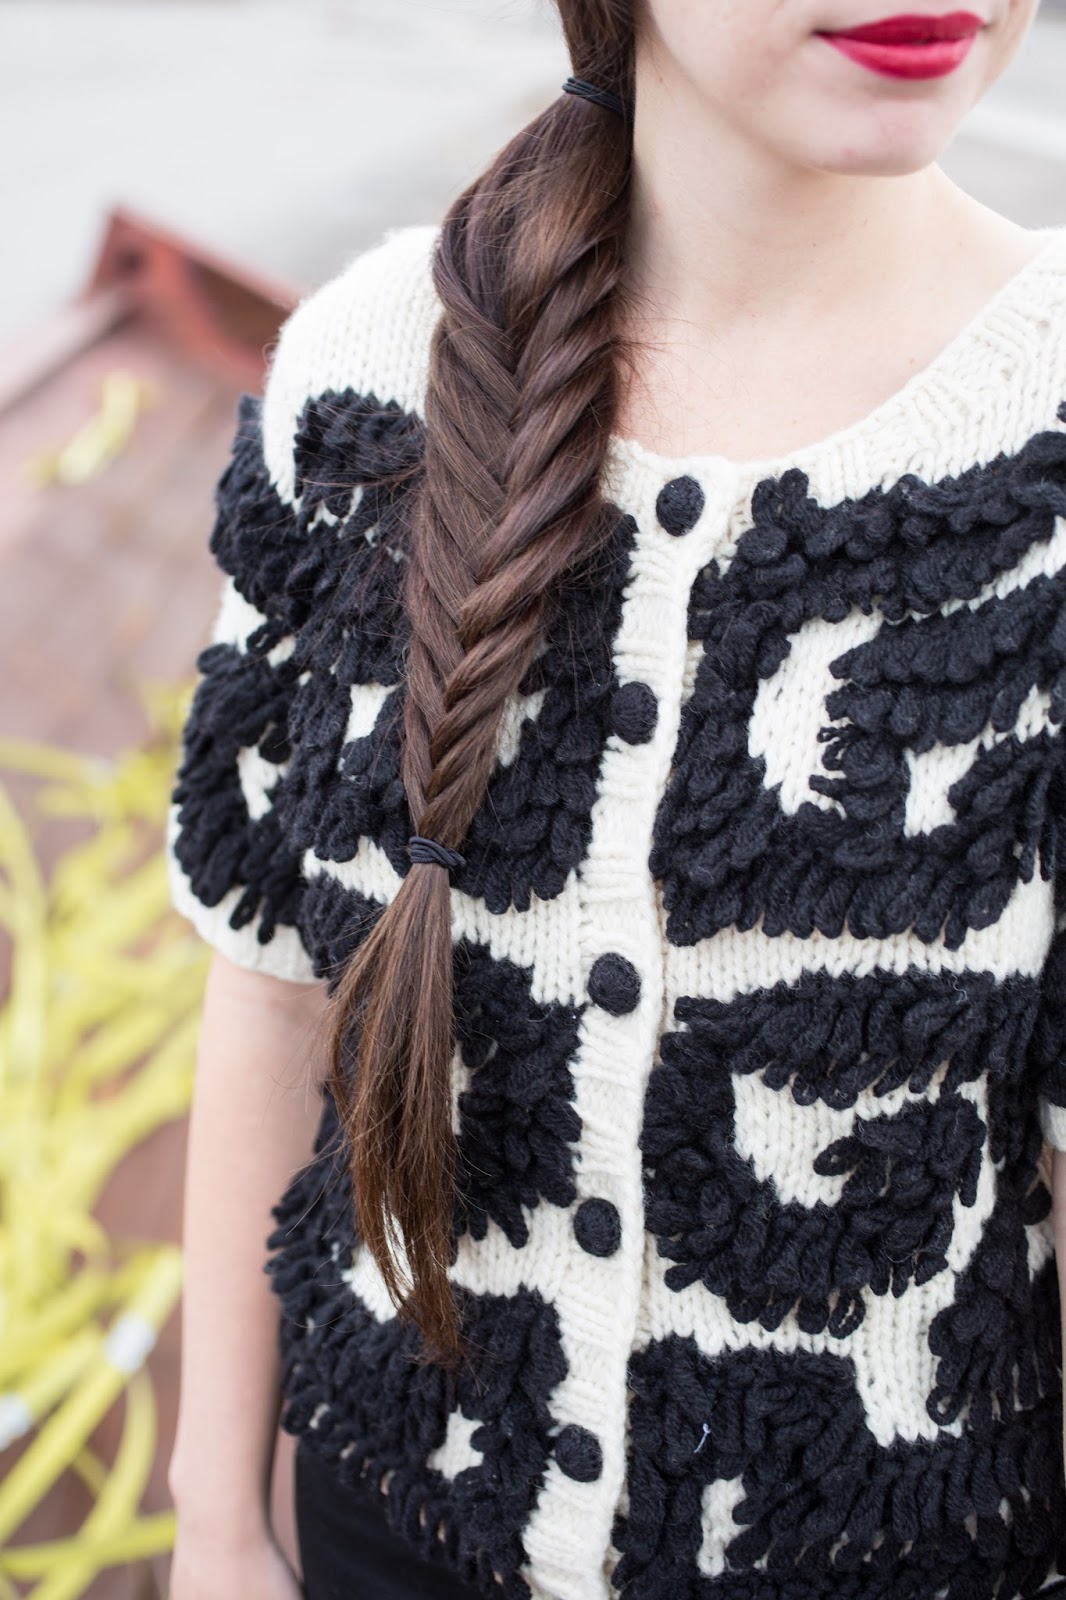 Red Lipstick and a Chunky Fishtail Braid